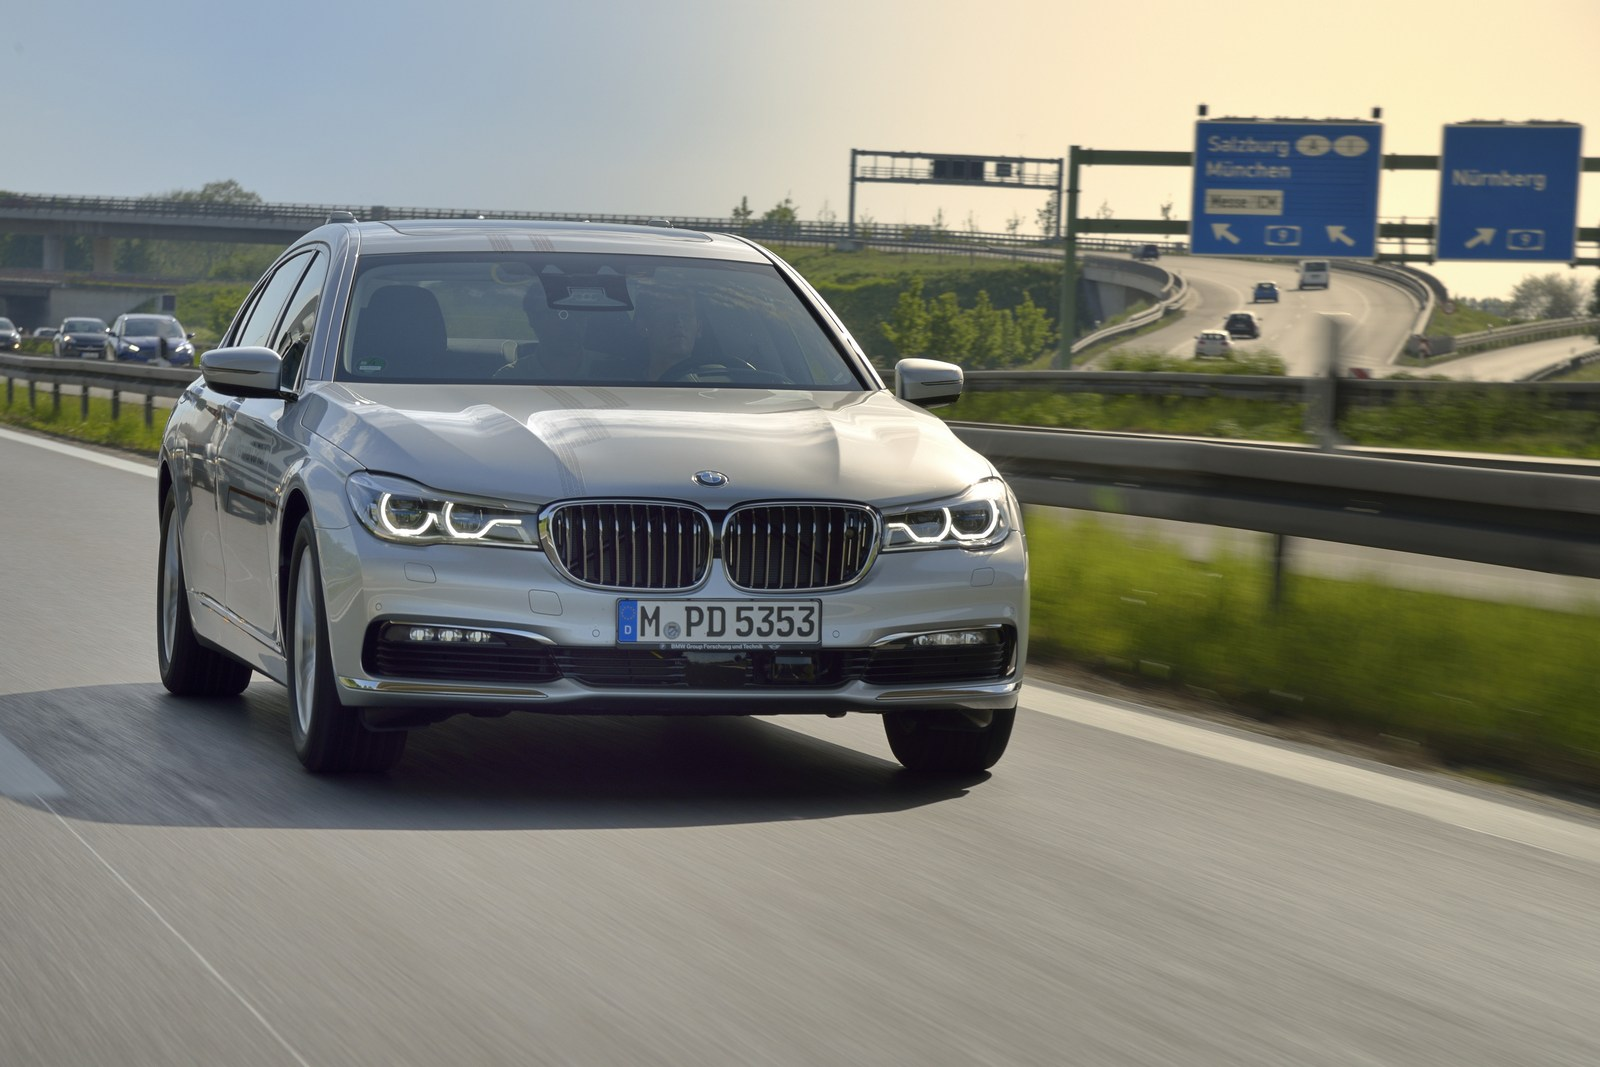 We get some insider info on LCI BMW 7 Series